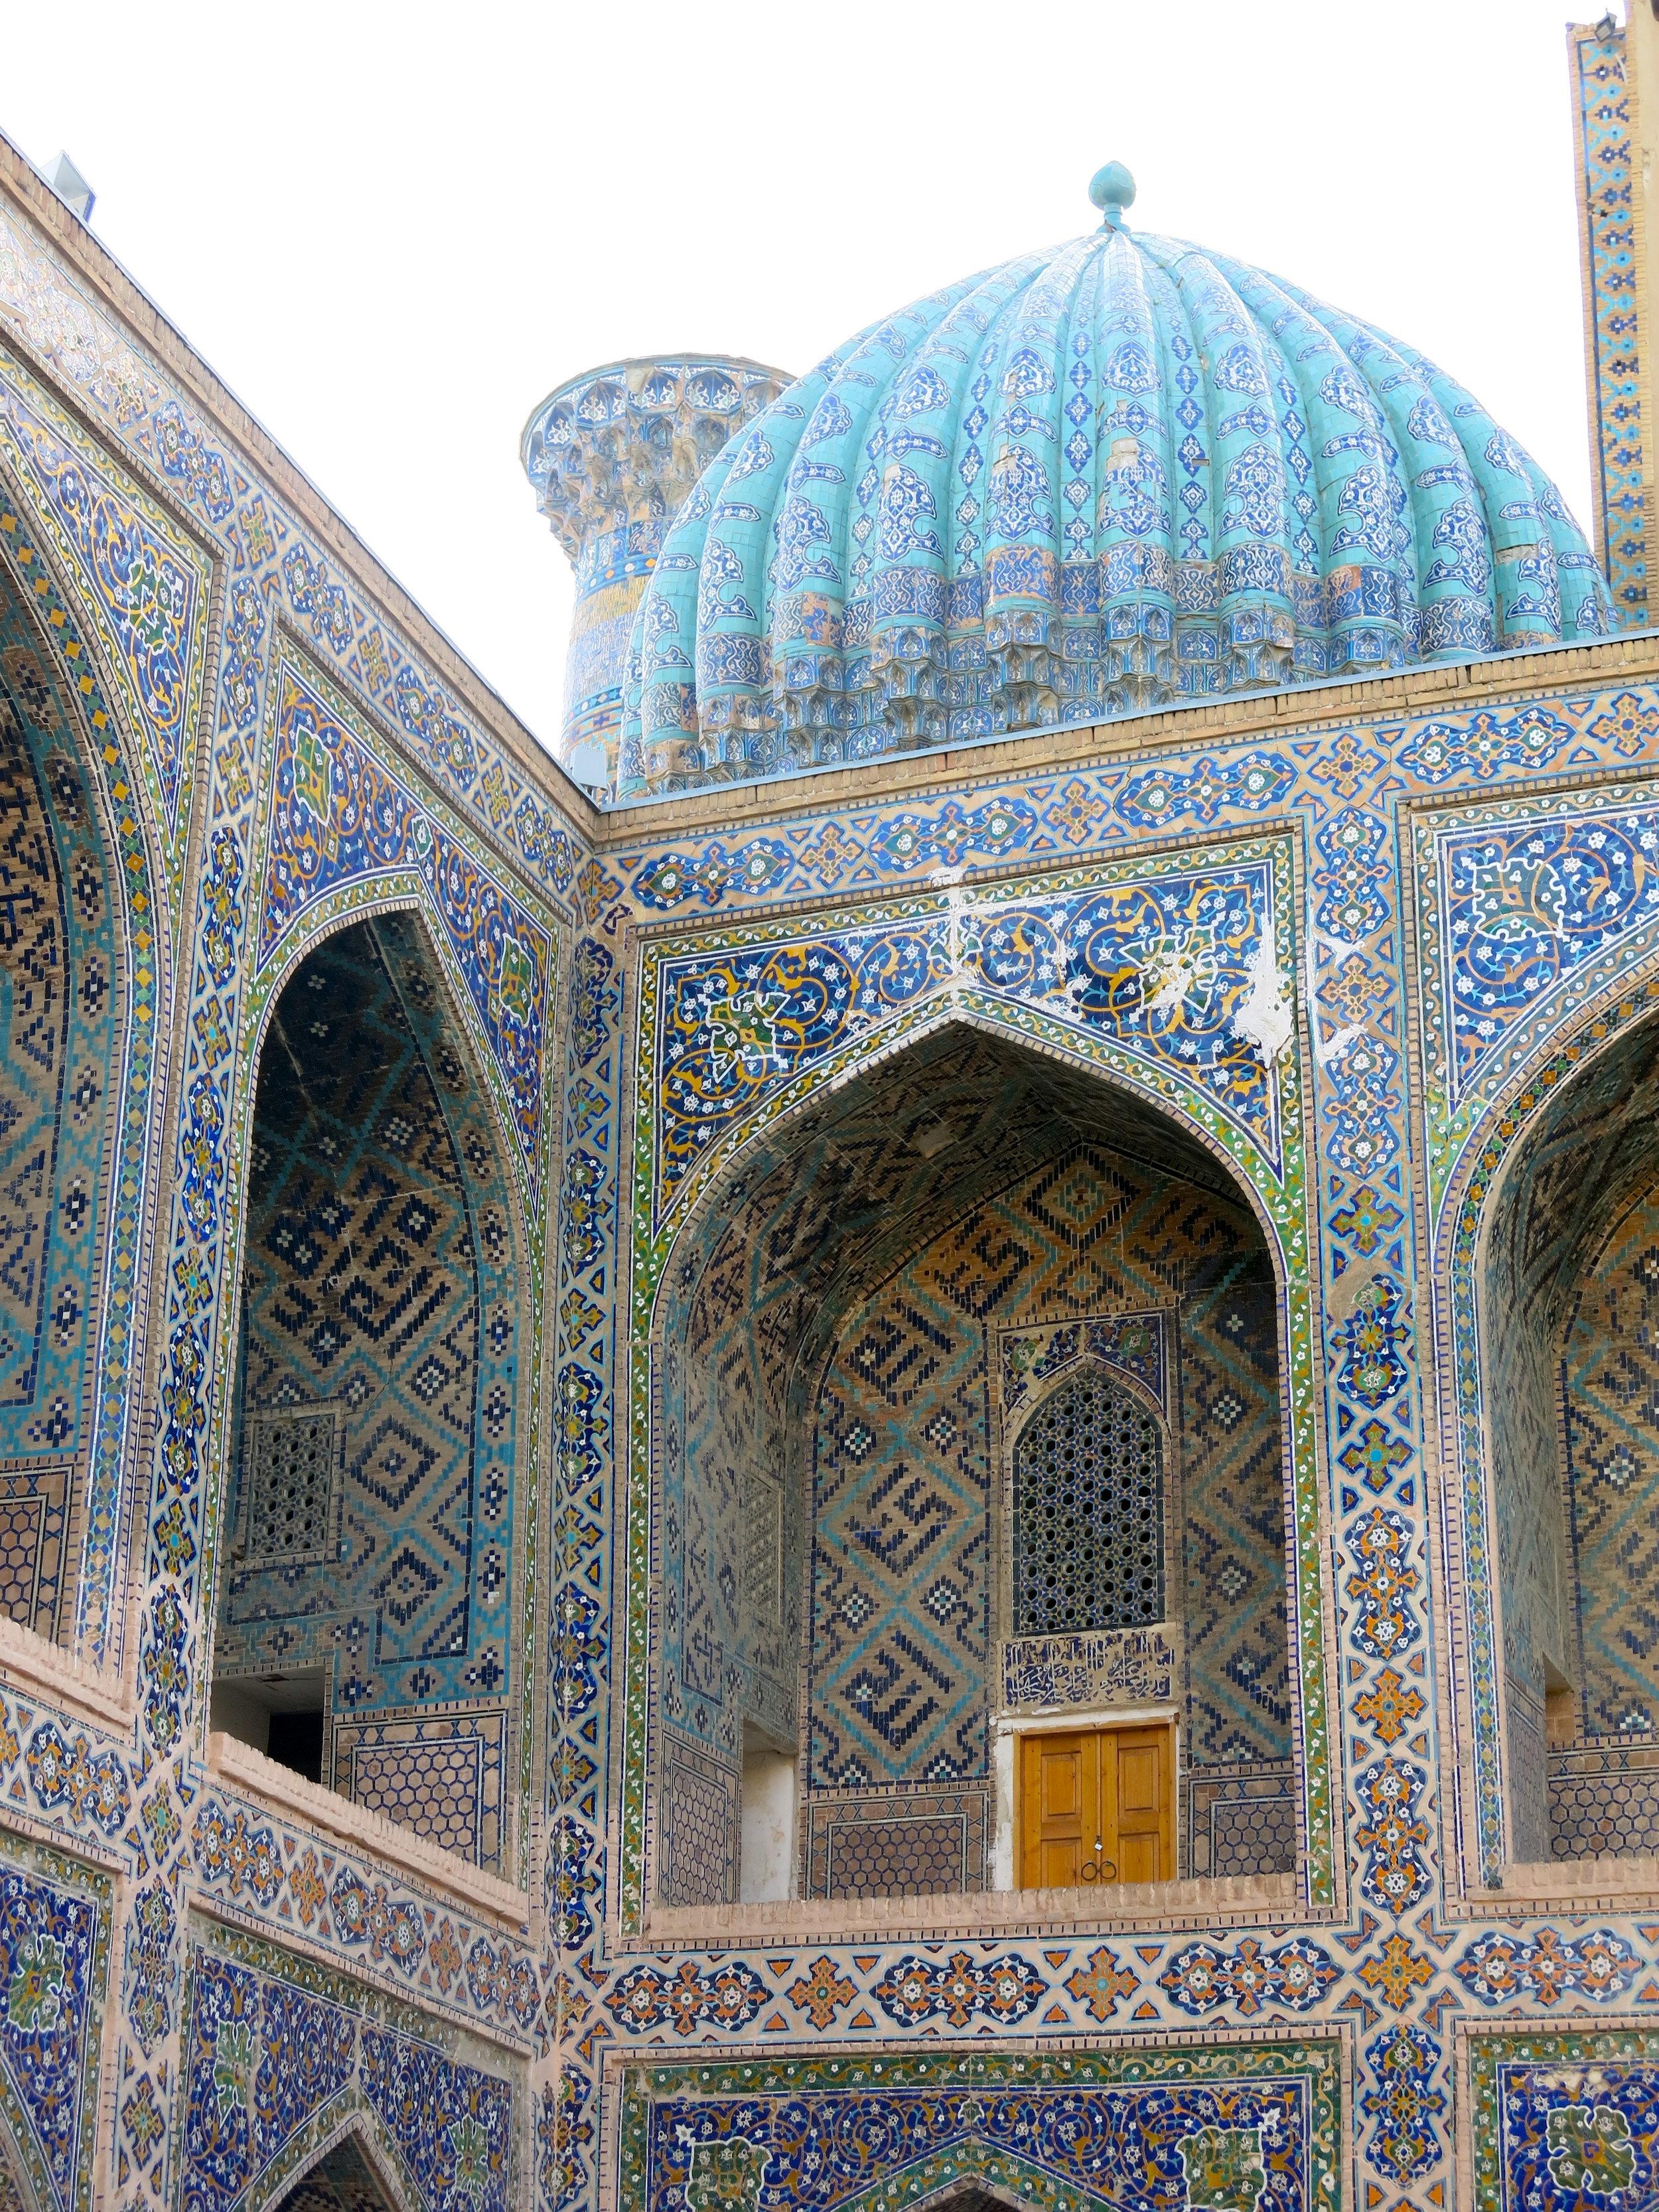 Fantastic view from the inner courtyard of the Sher-Dor madrasa